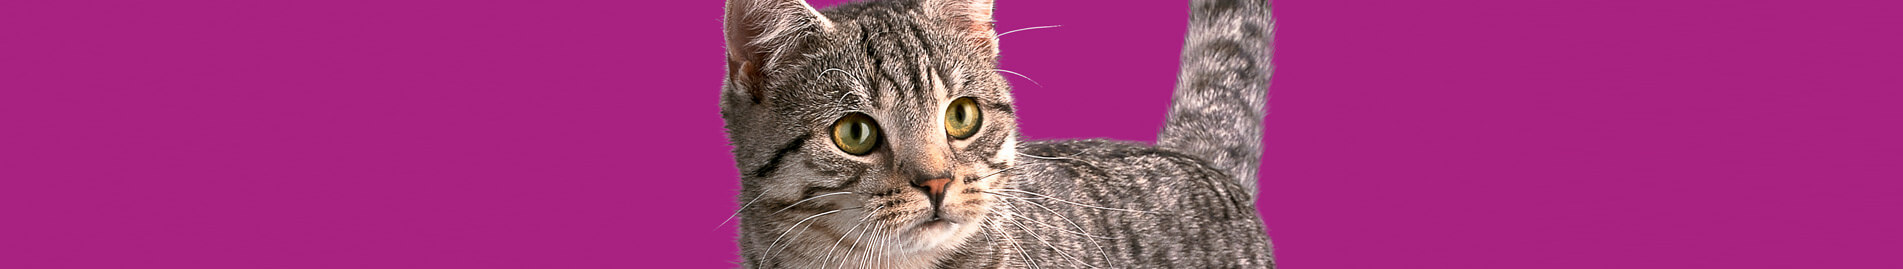 Whiskas® Kitten Le comportement naturel du chat